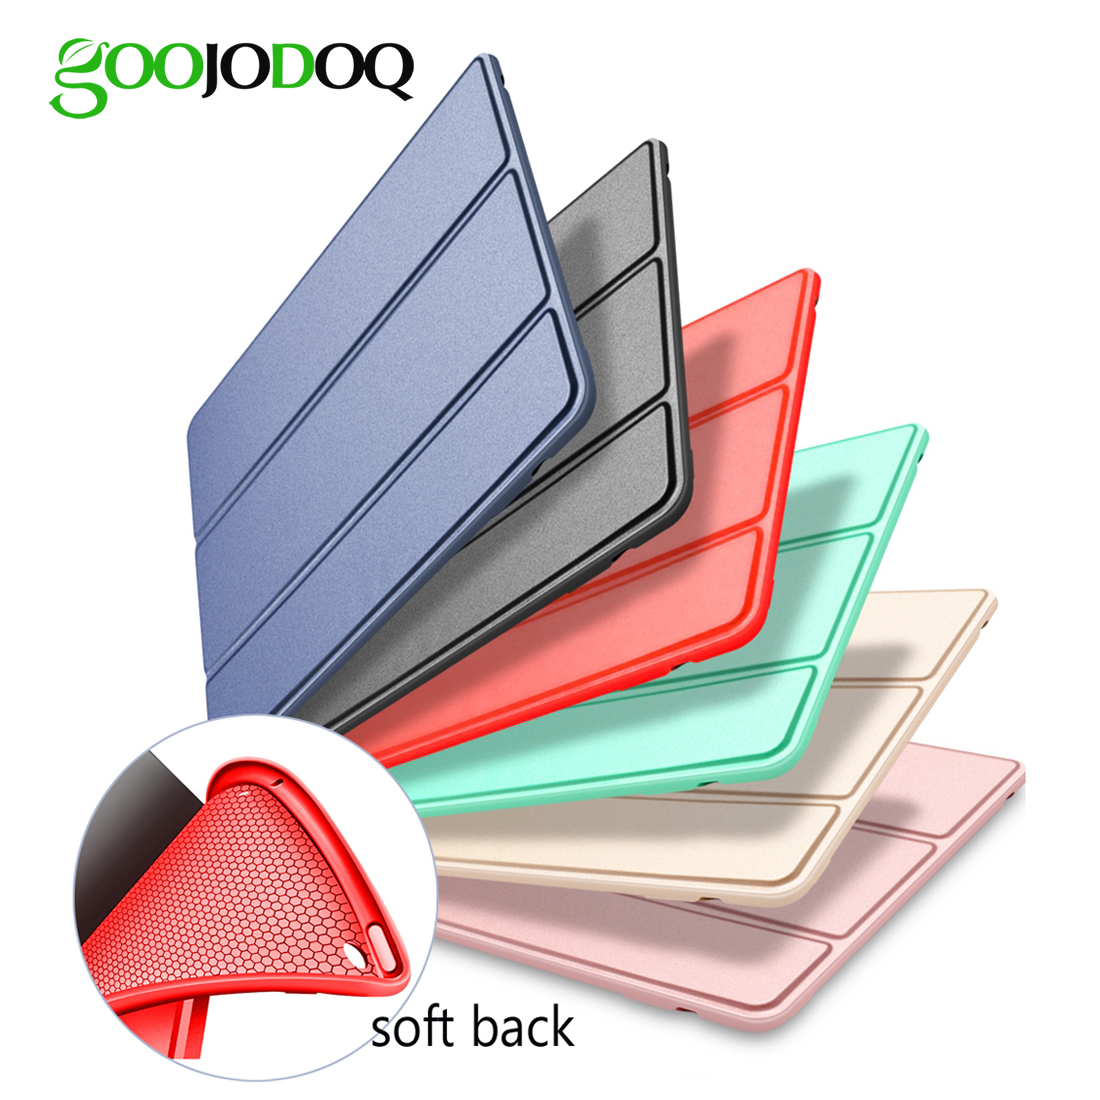 For iPad Air 2 Air 1 Case Silicone Soft Back Slim Pu Leather Smart Cover for Apple iPad Air Case Sturdy Stand Auto Sleep / Wake new luxury ultra slim silk tpu smart case for ipad pro 9 7 soft silicone case pu leather cover stand for ipad air 3 ipad 7 a71